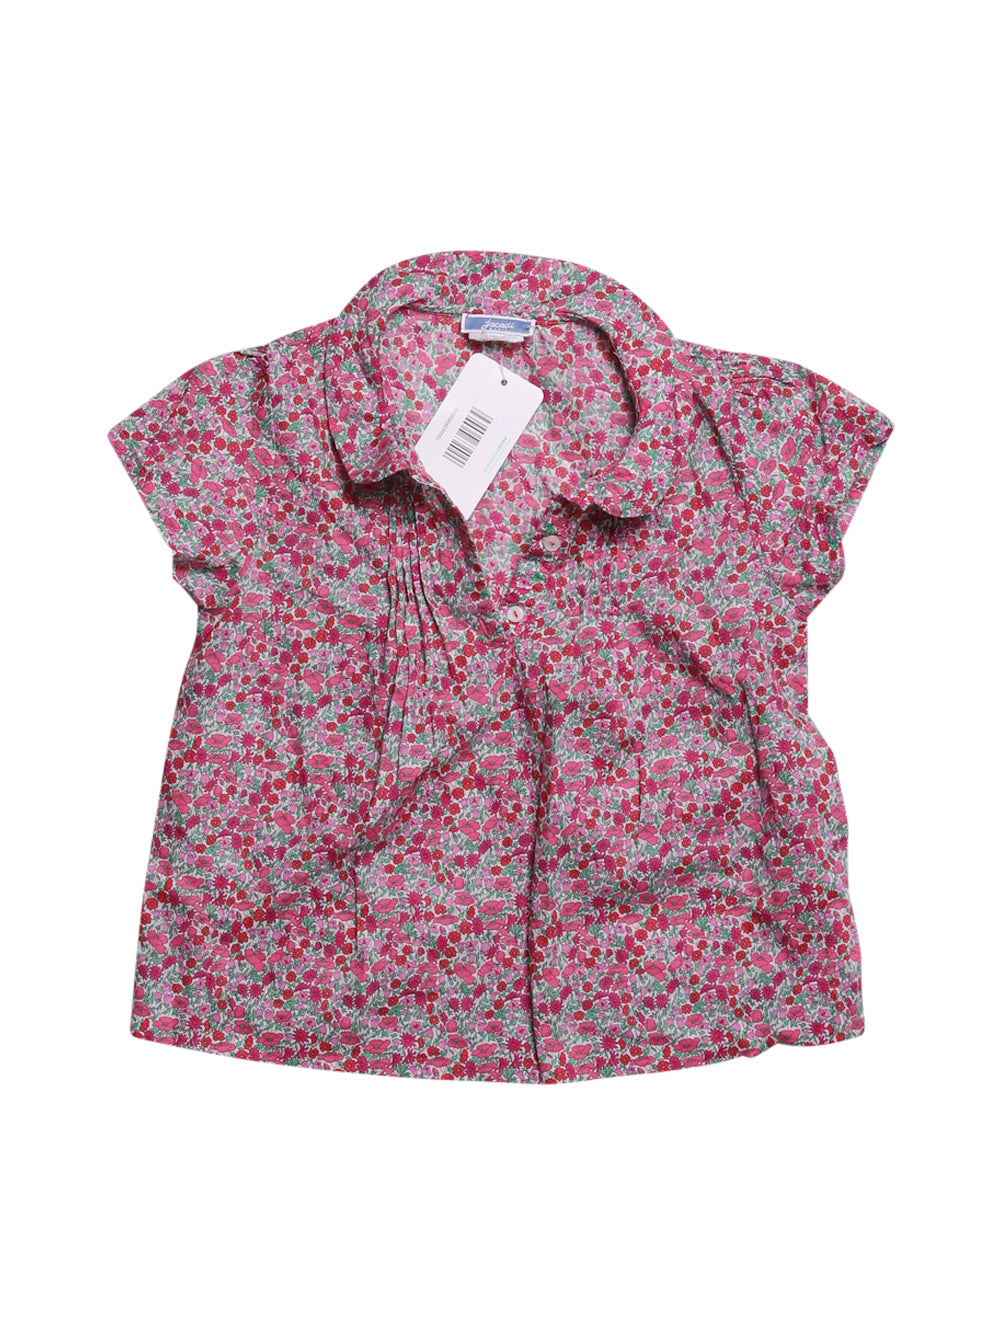 Front photo of Preloved Jacadi Pink Girl's shirt - size 3-4 yrs